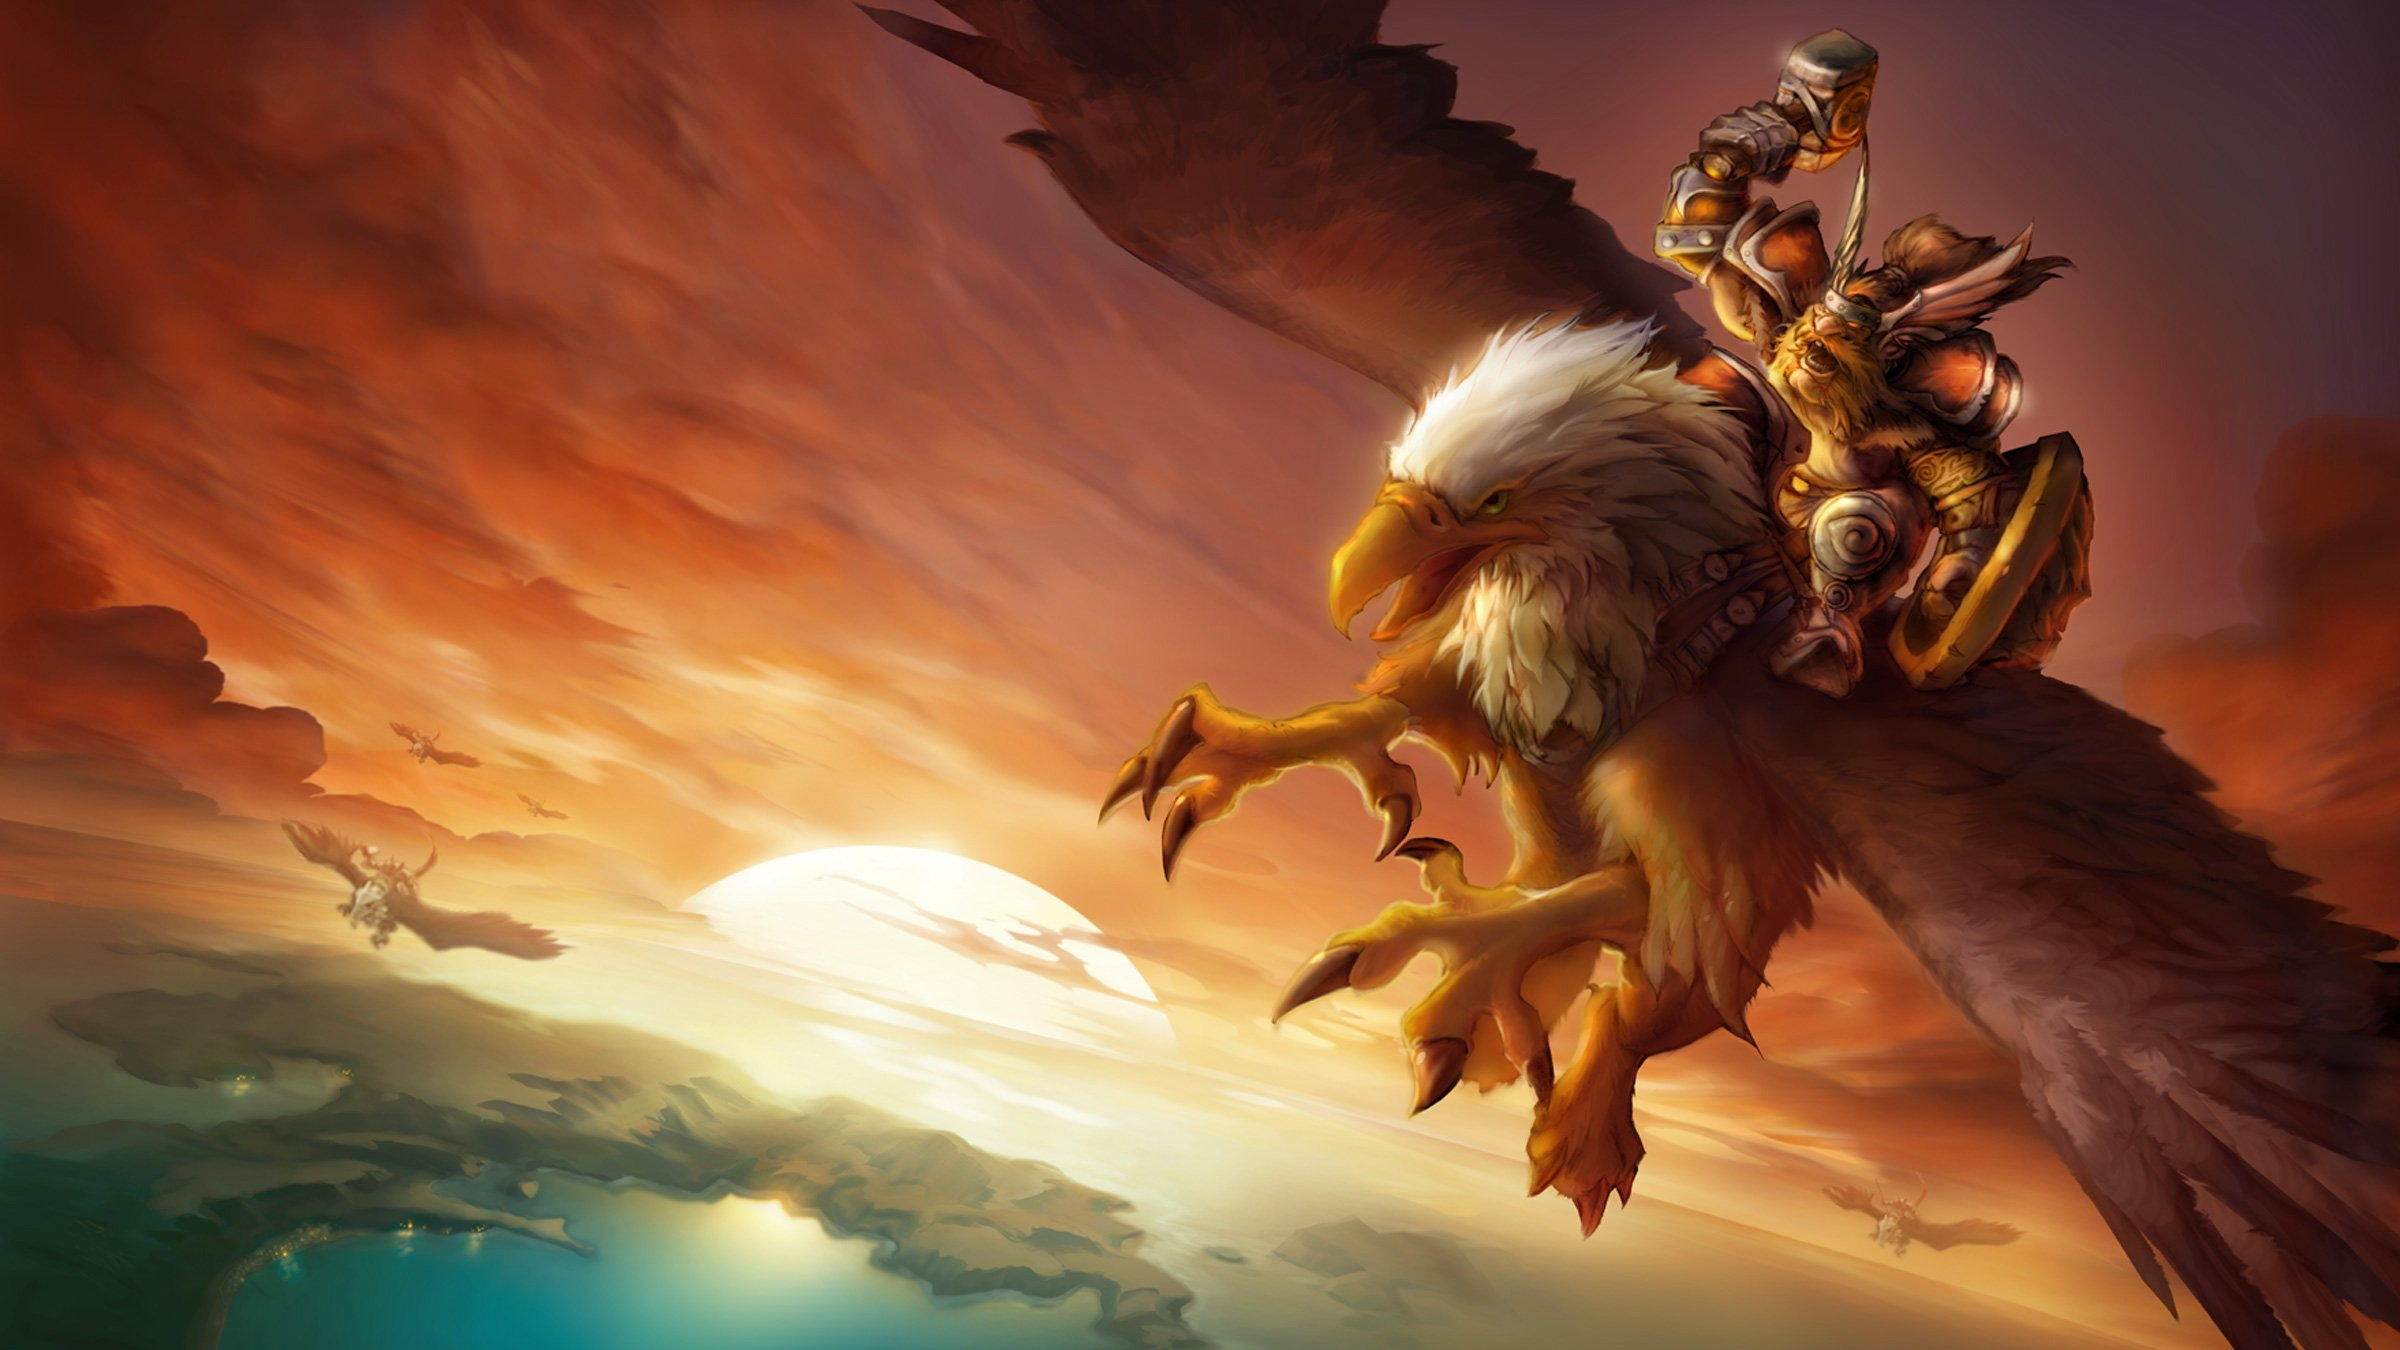 Look out for a World of Warcraft Classic demo at BlizzCon and at home screenshot